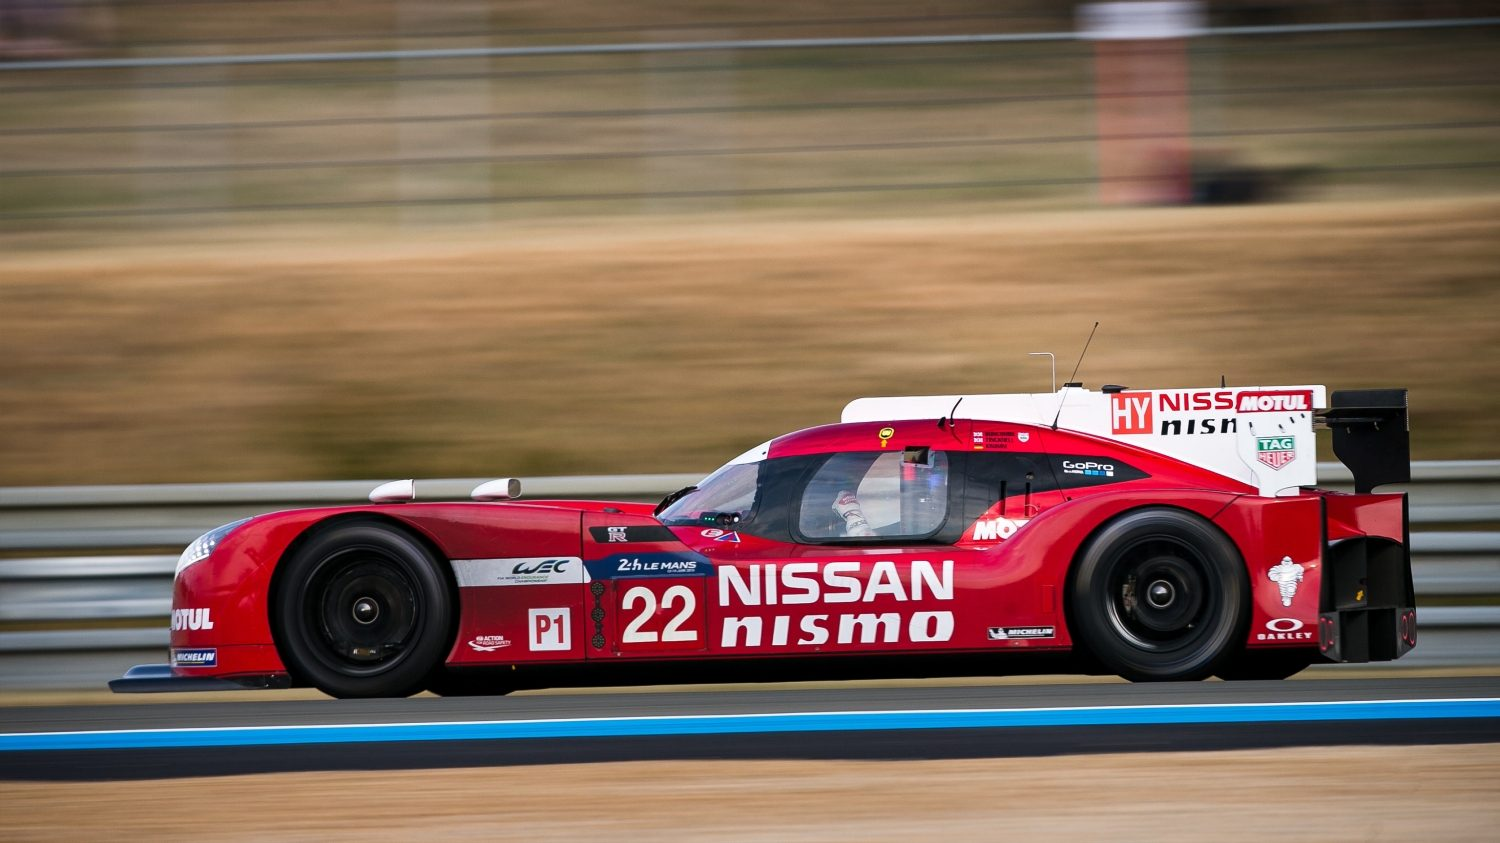 GT-R LM NISMO. Gallery profile on the track..